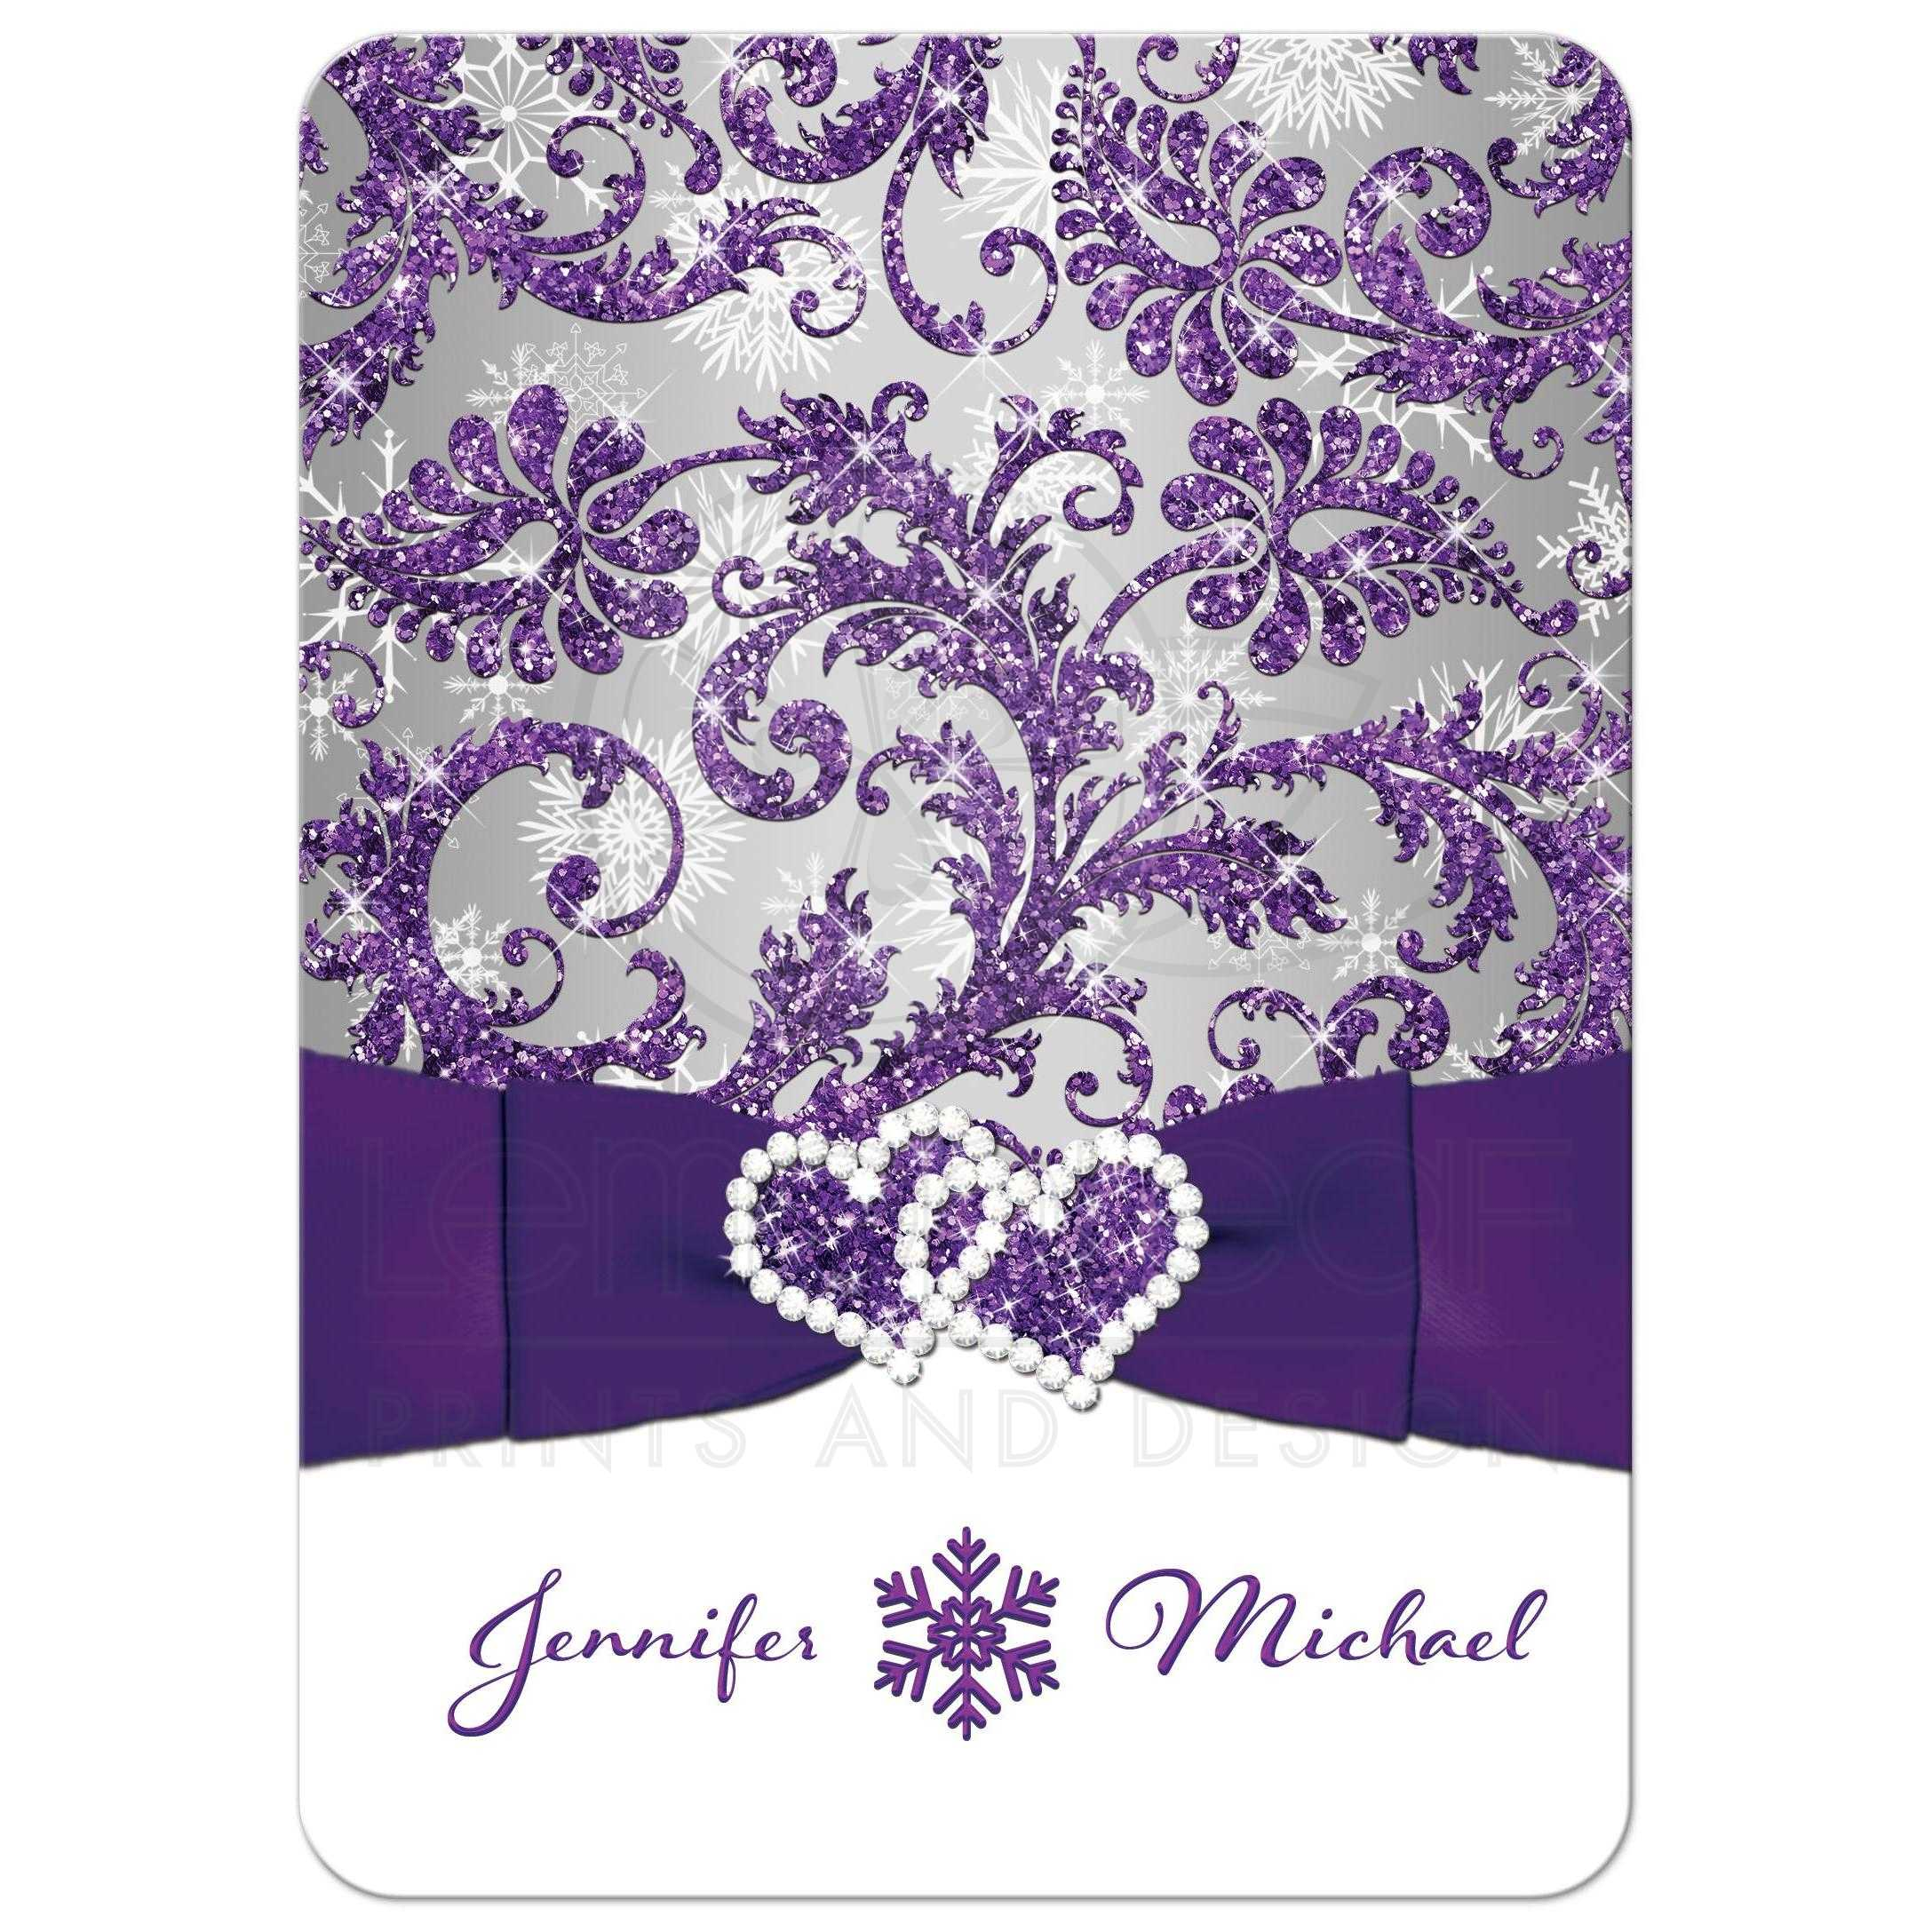 ... Great Winter Wonderland Wedding Invitation In Ice Purple, Silver, And  White Snowflakes With Ribbon ...